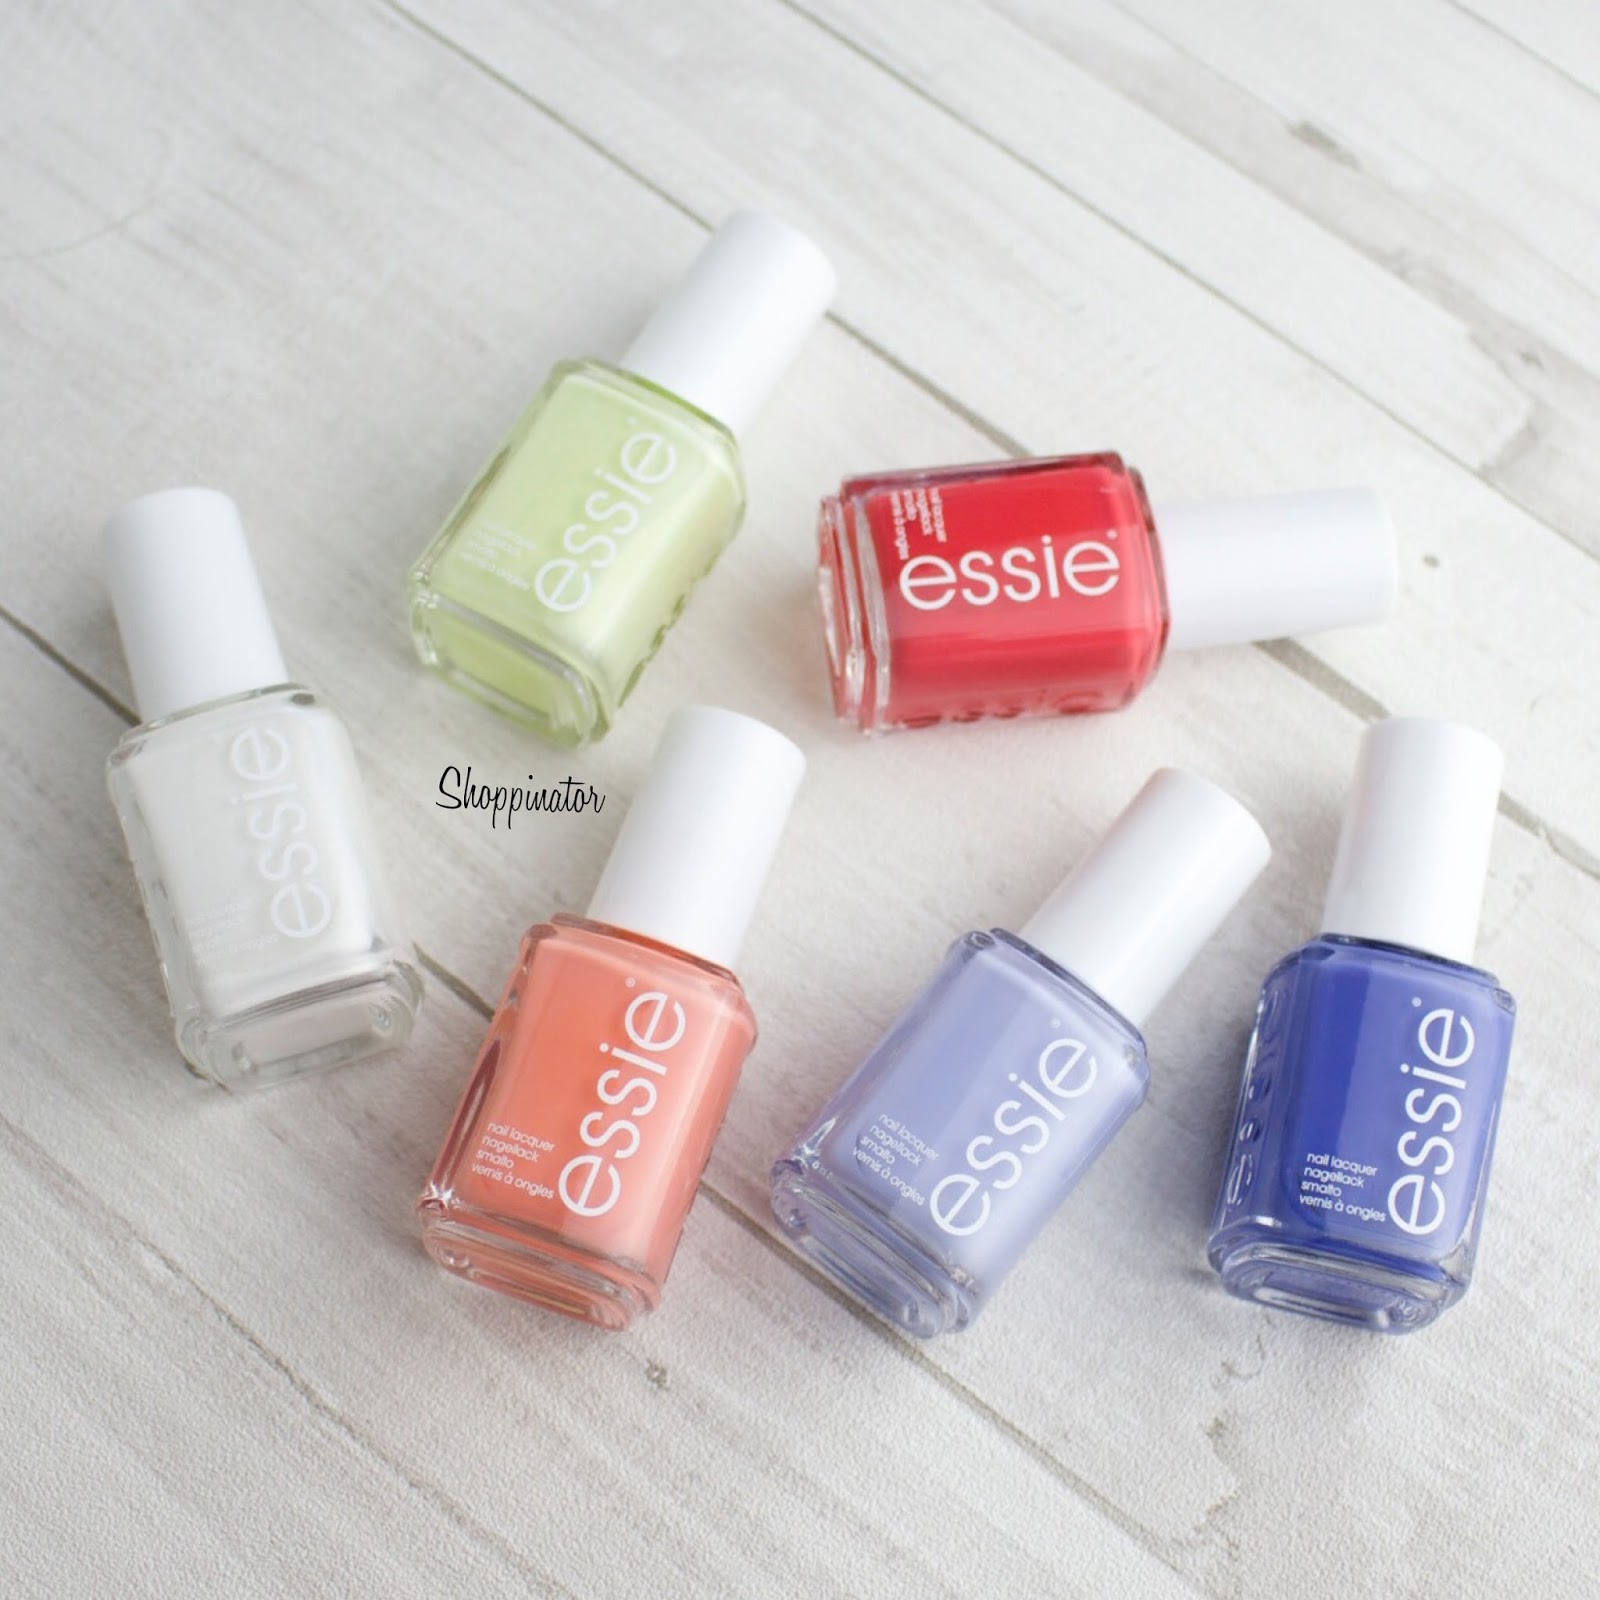 Essie-Sommer-Summer-LE-2015-limitiert-Nagellack-Shoppinator-Nailpolish-Private-Weekend-Weiß-Glitzer-Chillato-Gelb-Pastell-Peach-Side-Babe-Korall-Orange-Sunset-Sneaks-Rot-Neon-Pret-a-Surfer-blau-Marine-Hellblau-Salt-Water-Happy-Dupe-Find-me-an-oasis-Fiji-Lackiert